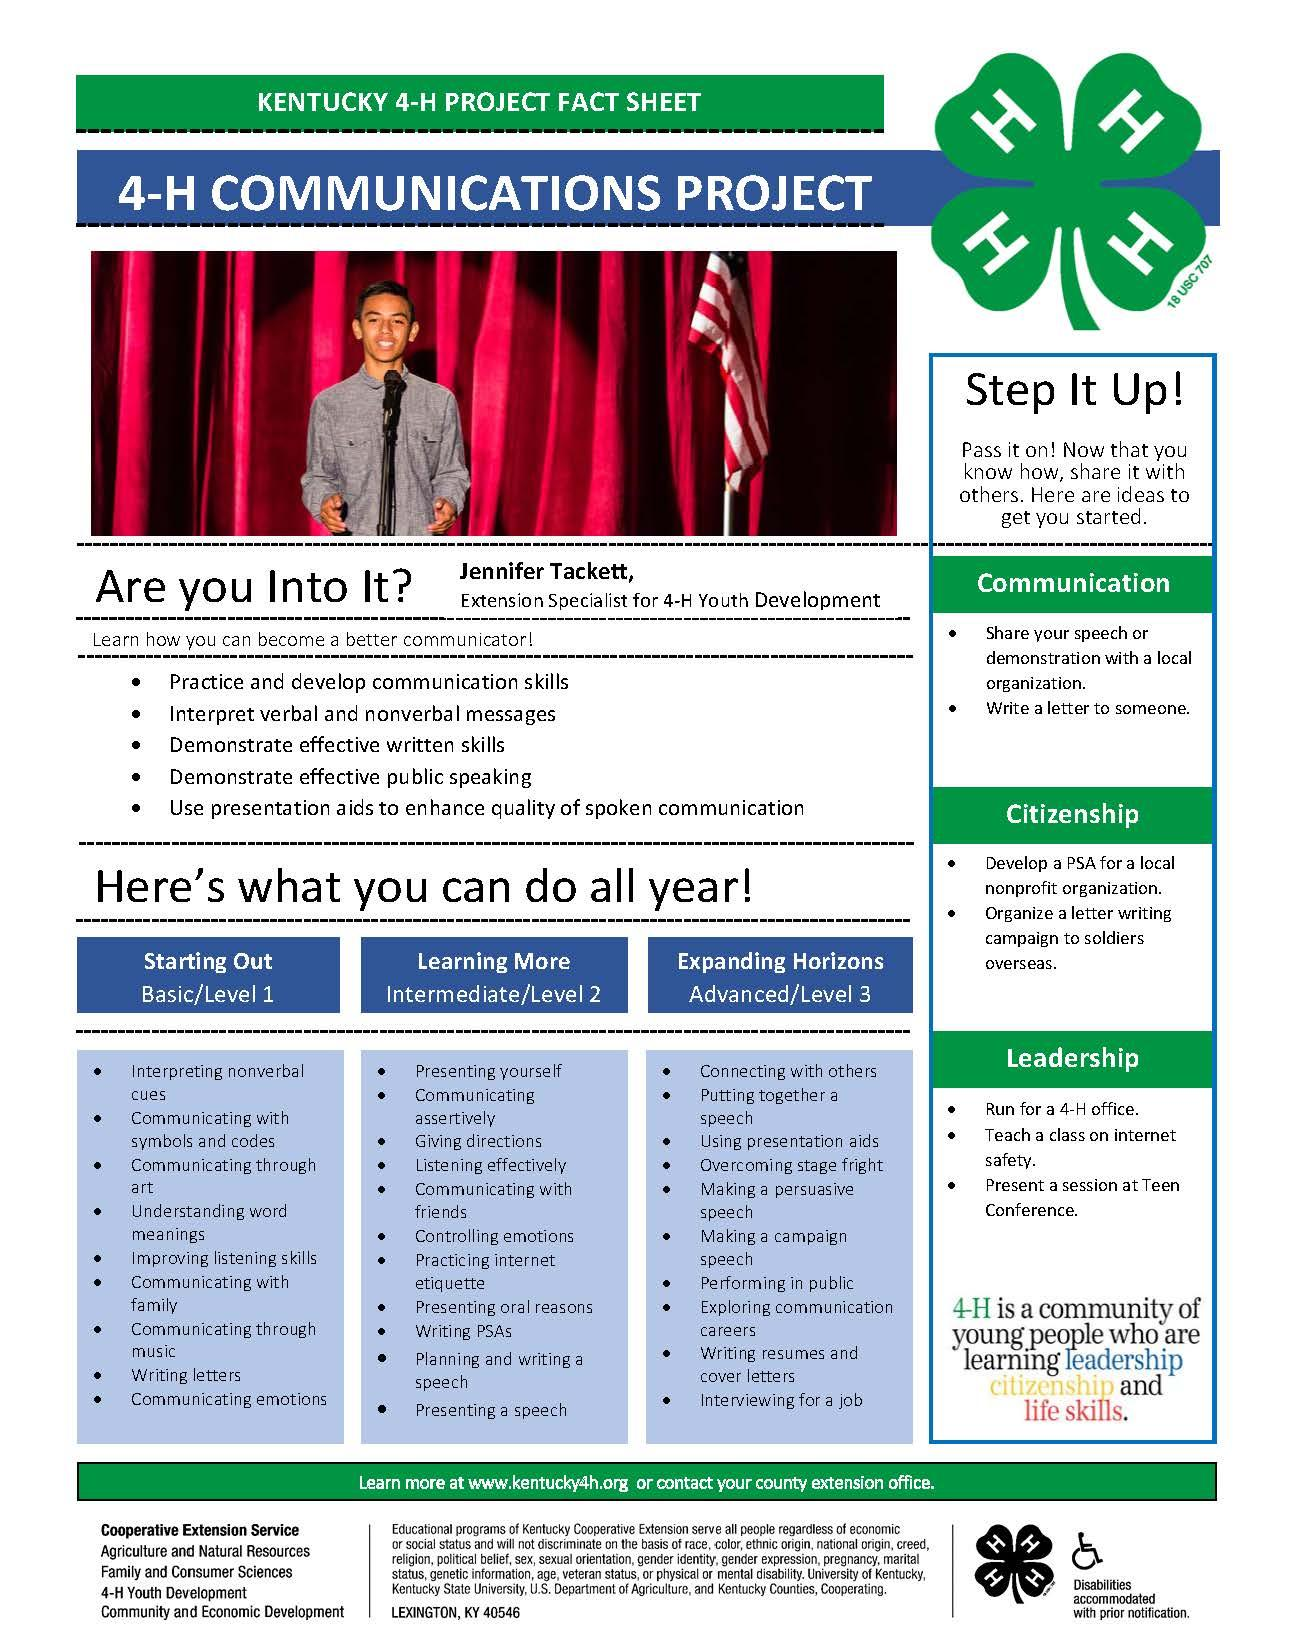 4-H Communication Project Overview